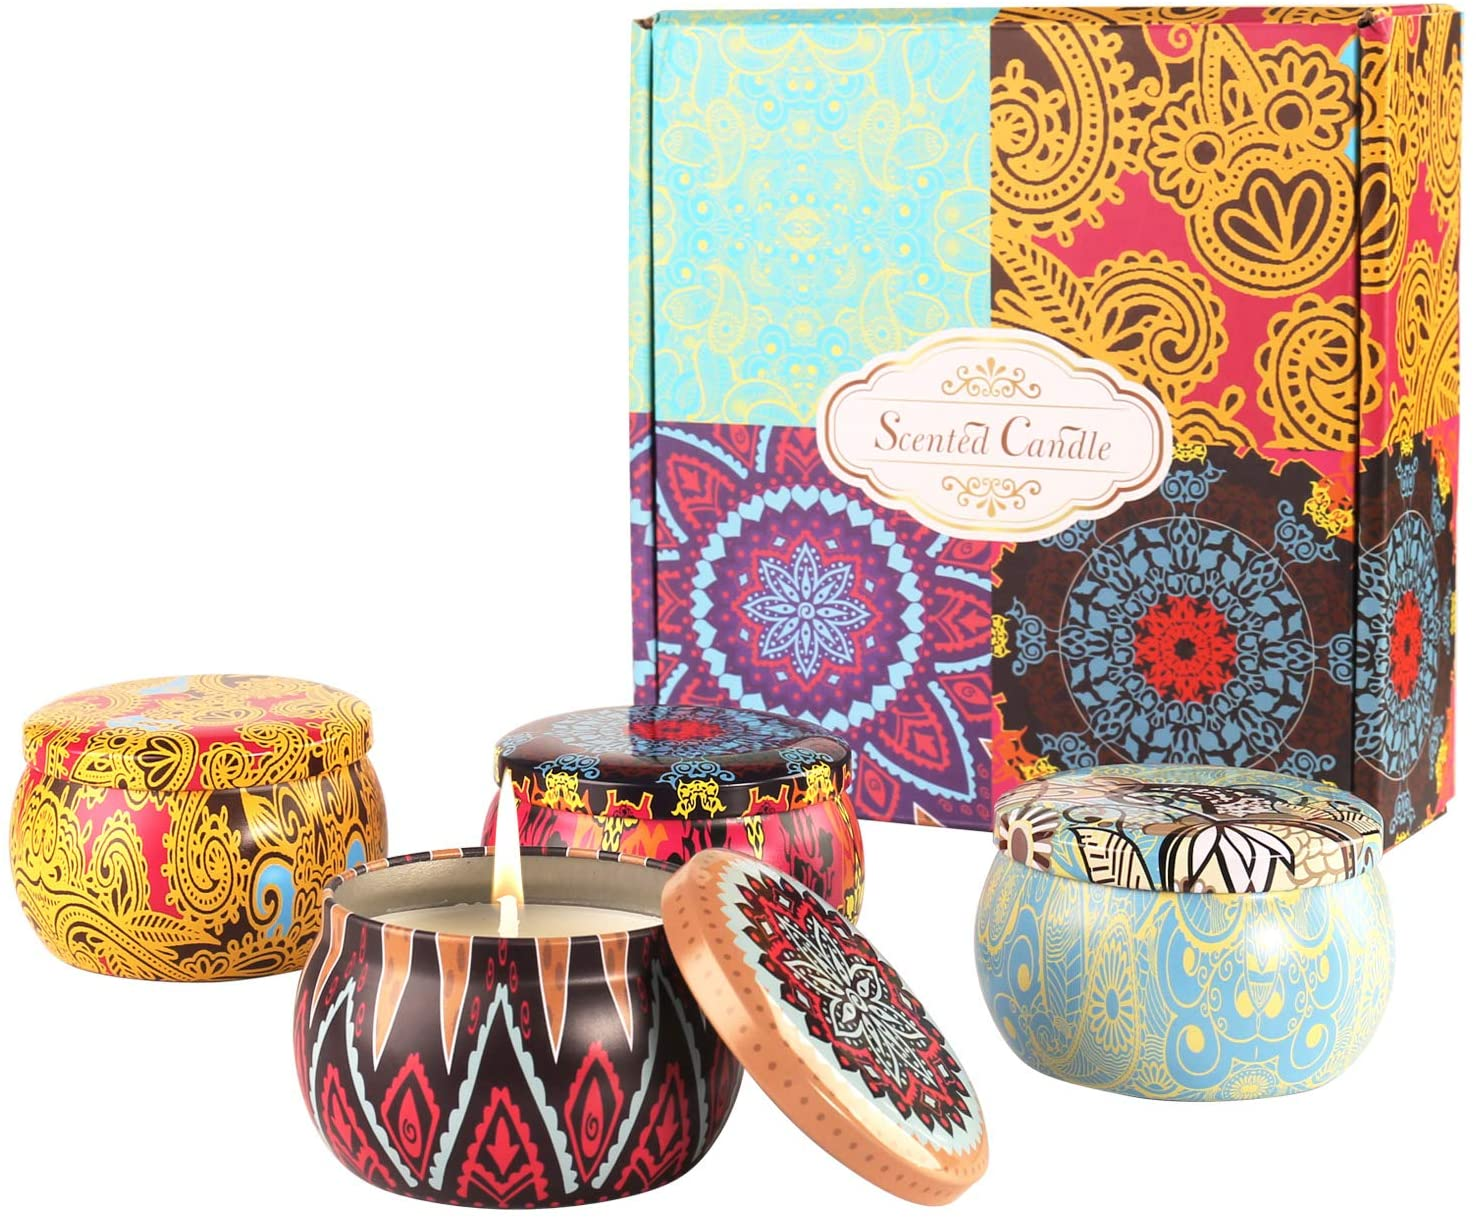 Scented Candles Gift Set,Lavender, Lemon, Mediterranean Fig, Fresh Spring,Natural Soy Wax Portable Travel Tin Candle Women Gift with Strongly Fragrance-4pack